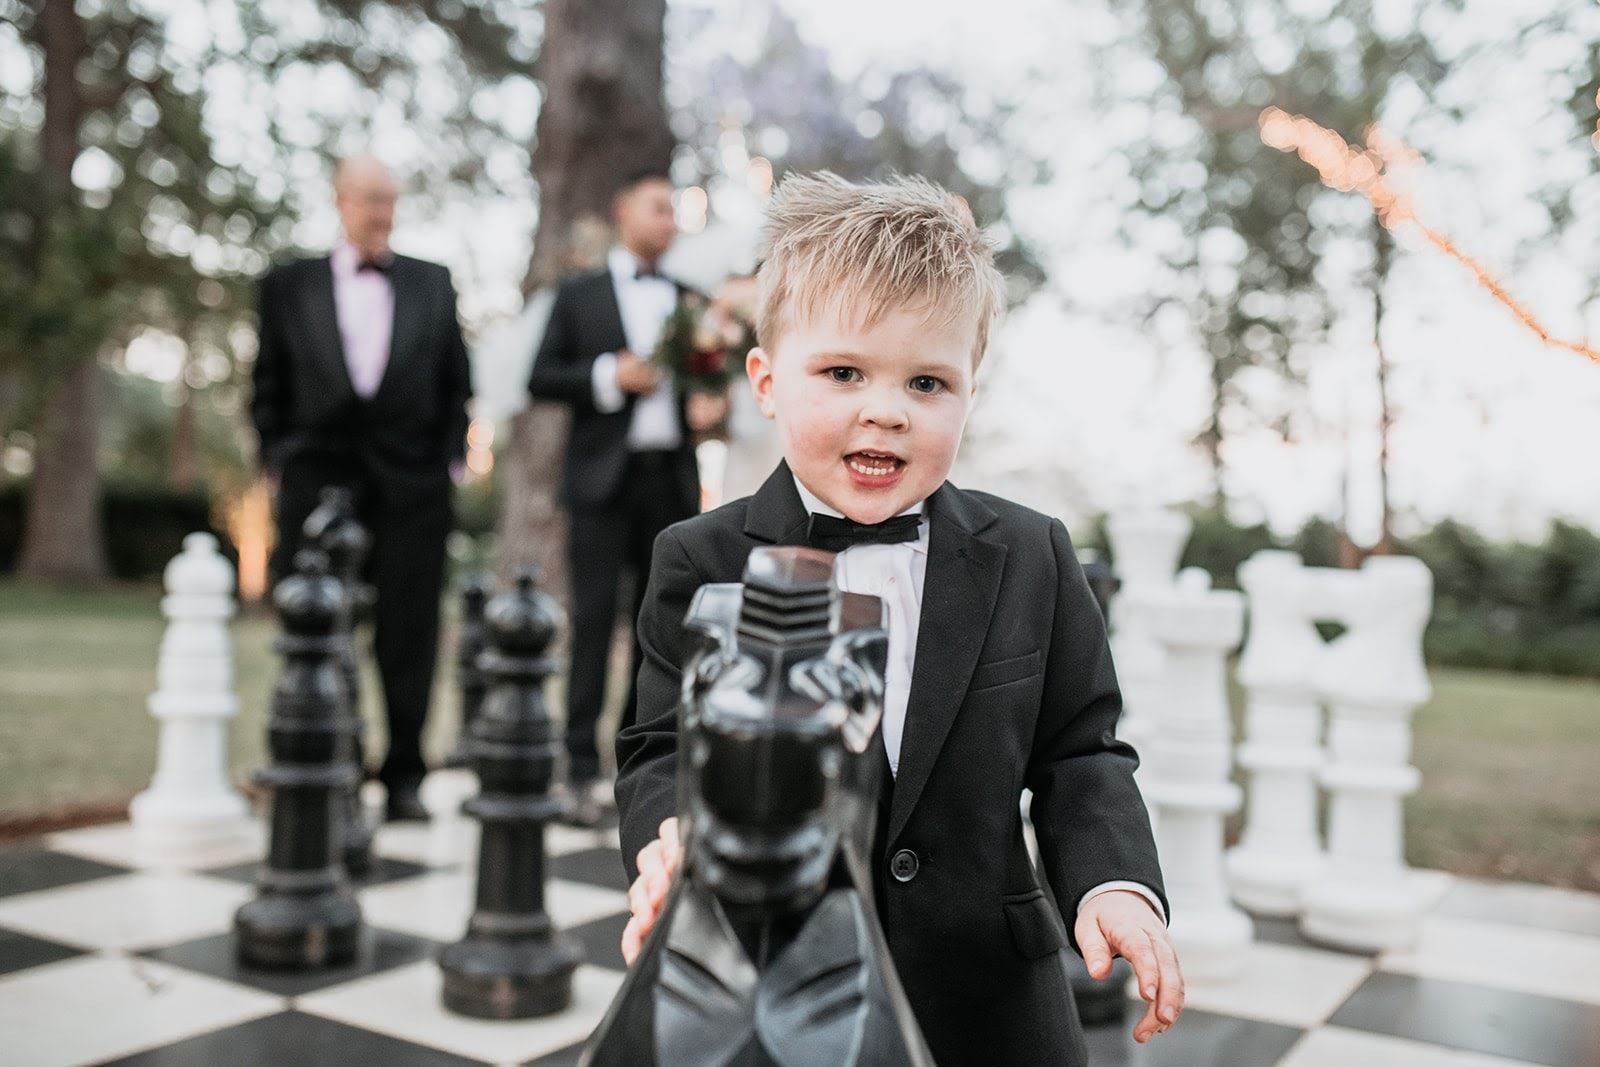 Child dressed in suit playing with outdoor chess set